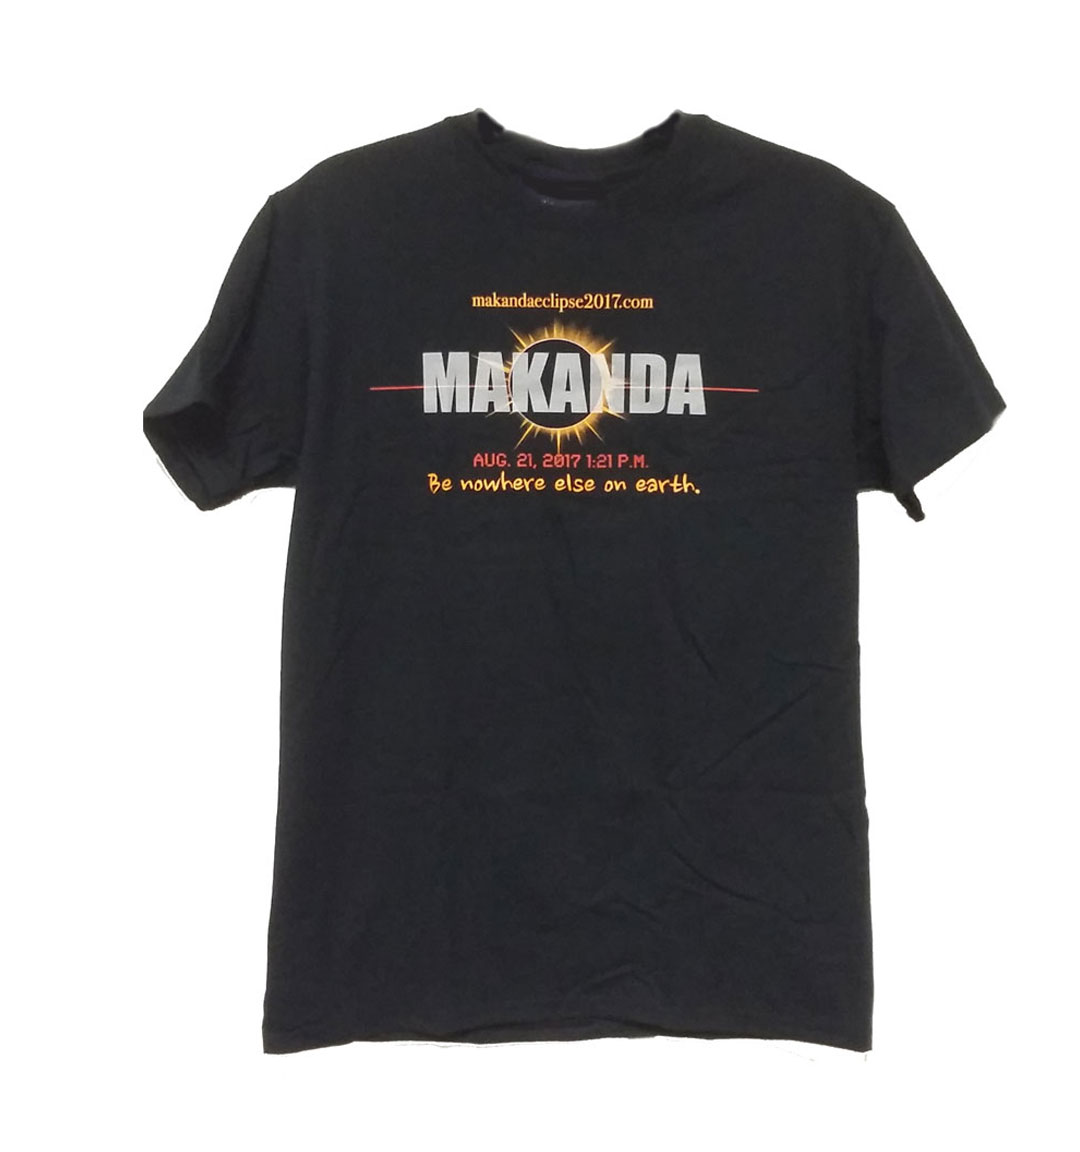 "Image for the 710 BRANDED MAKANDA ""NOWHERE ELSE ON EARTH"" ECLIPSE BLACK T-SHIRT product"